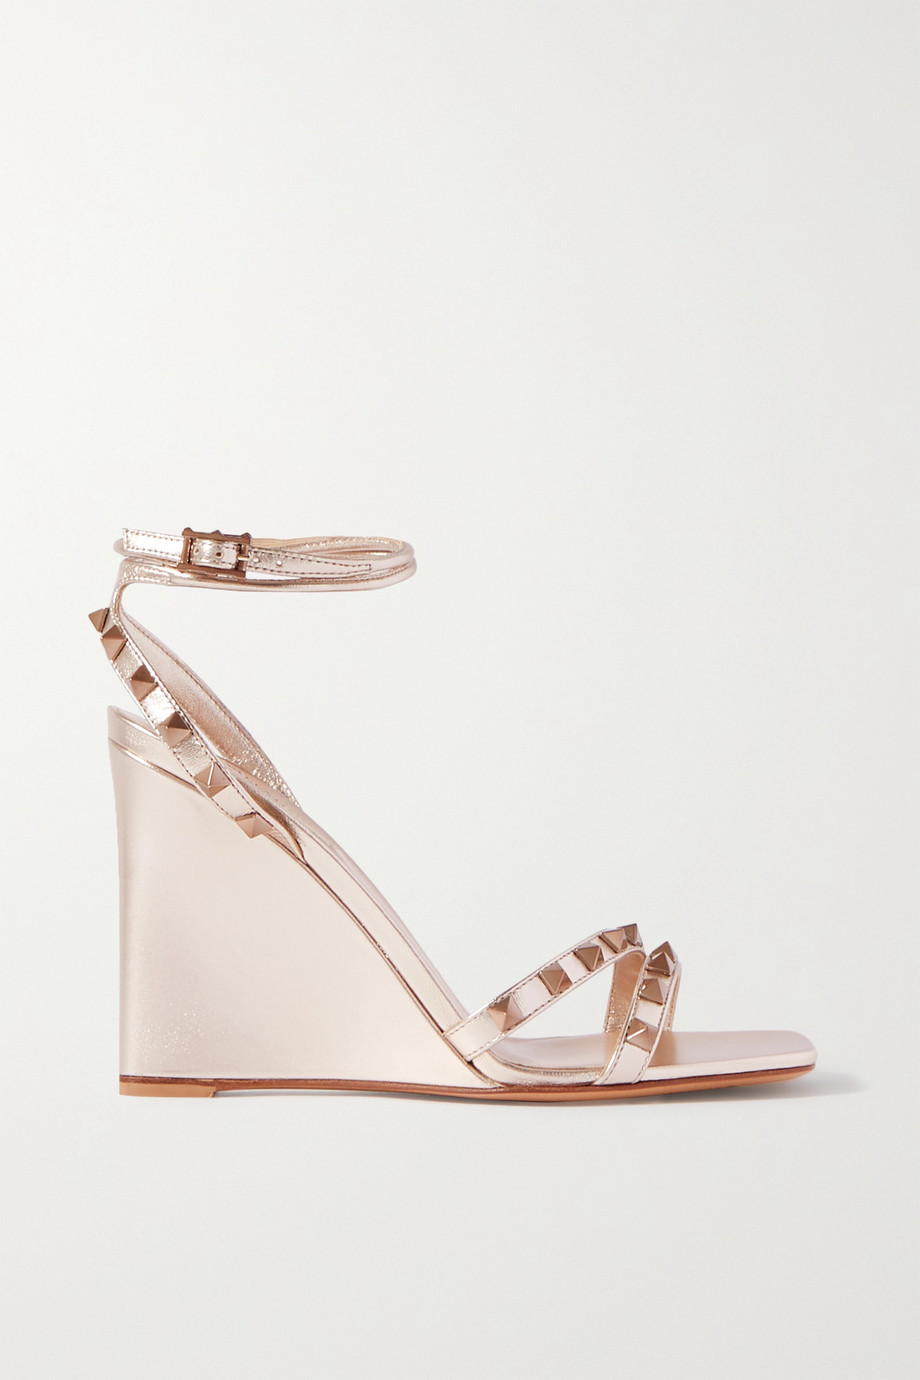 Valentino Valentino Garavani Rockstud 100 metallic leather wedge sandals